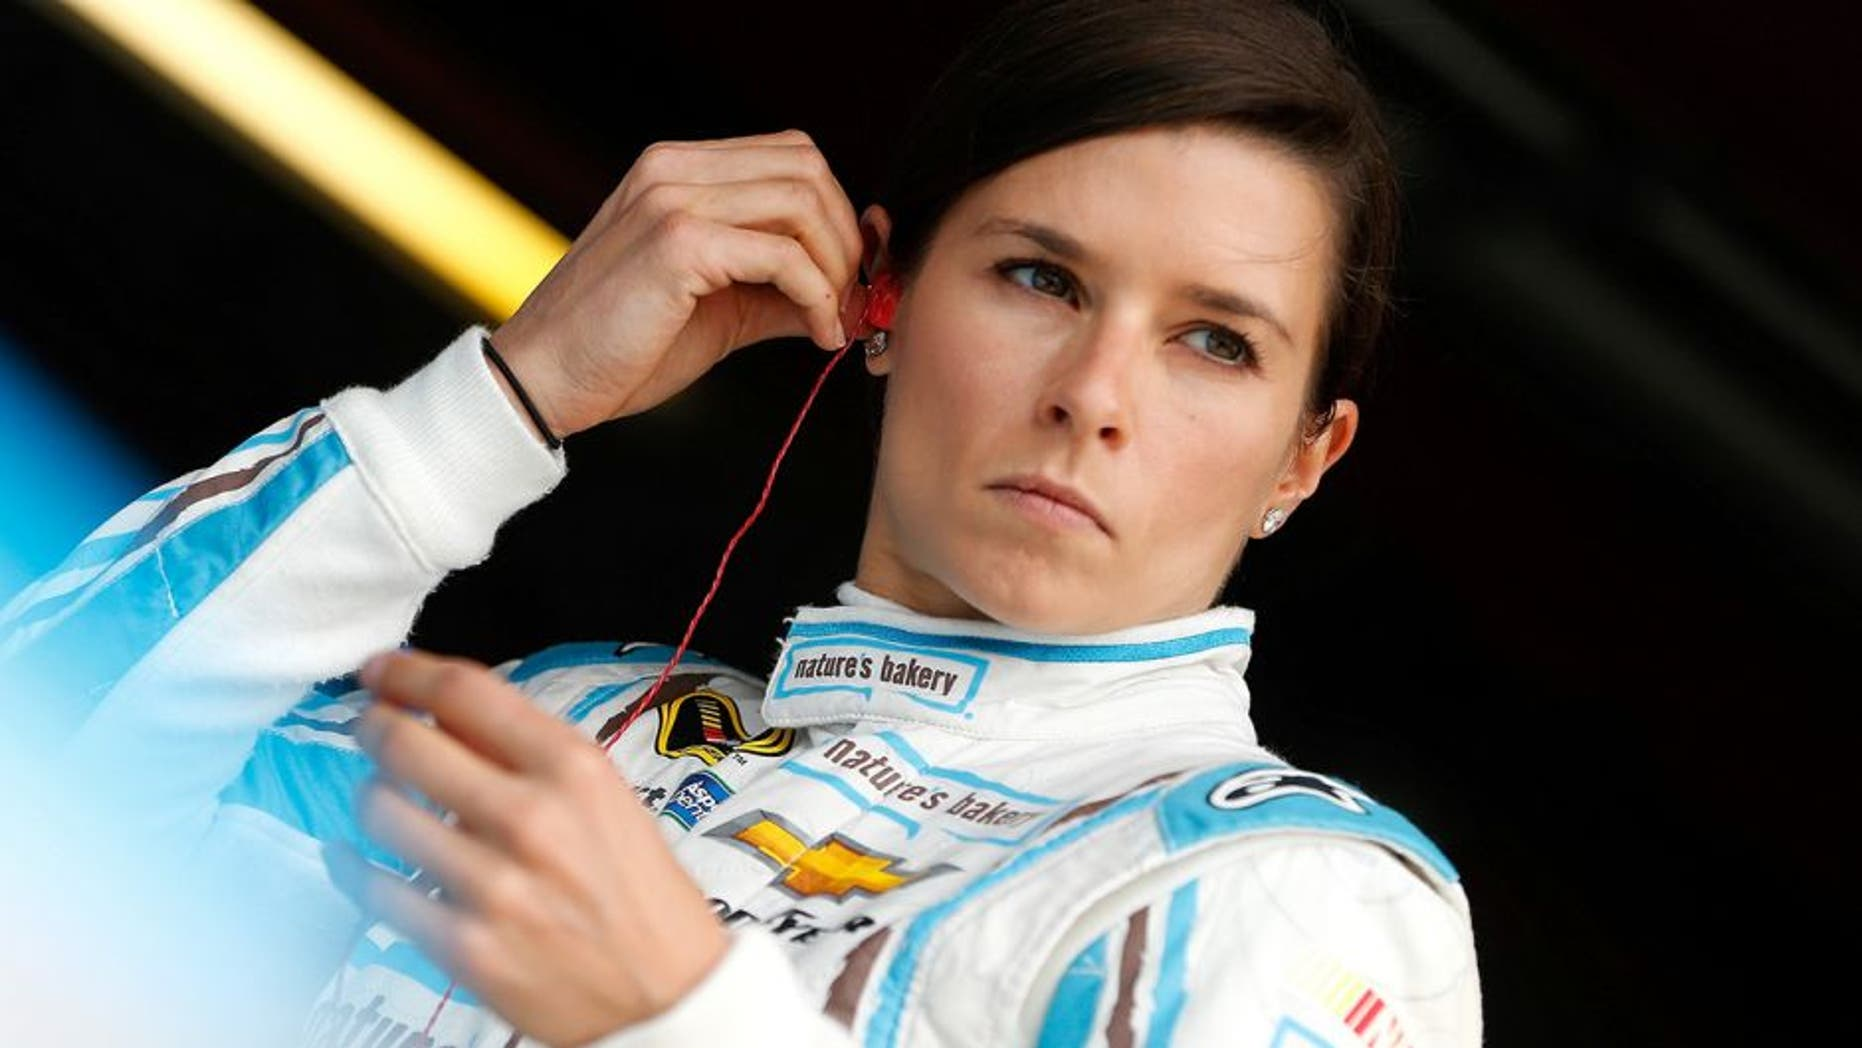 RICHMOND, VA - APRIL 22: Danica Patrick, driver of the #10 Nature's Bakery Chevrolet, stands in the garage area during practice for the NASCAR Sprint Cup Series TOYOTA OWNERS 400 at Richmond International Raceway on April 22, 2016 in Richmond, Virginia. (Photo by Brian Lawdermilk/Getty Images)